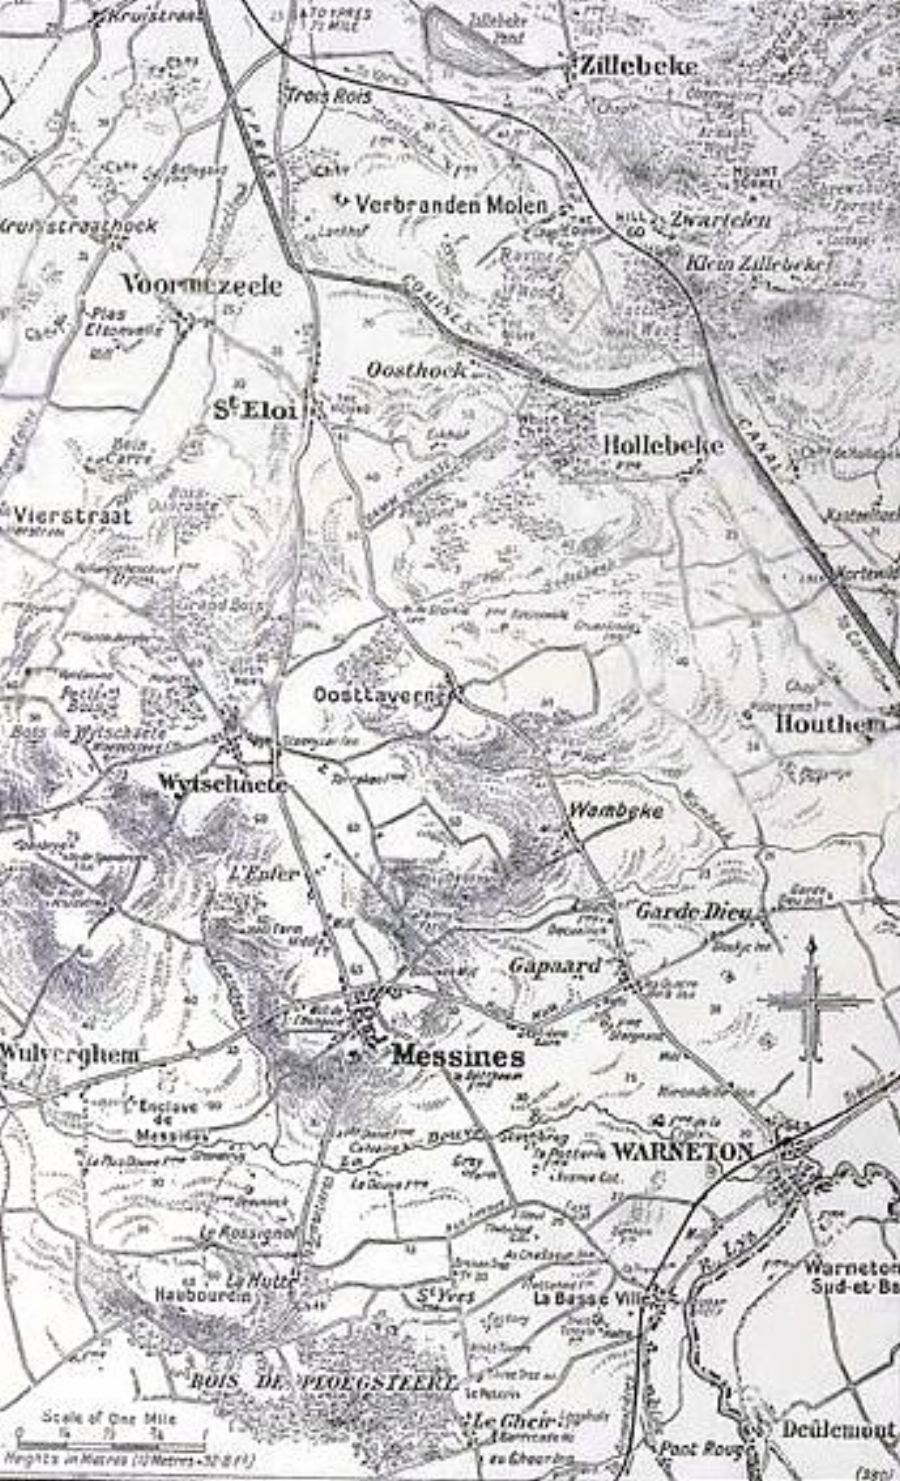 Map of the Messines-Wytschaete area 1917